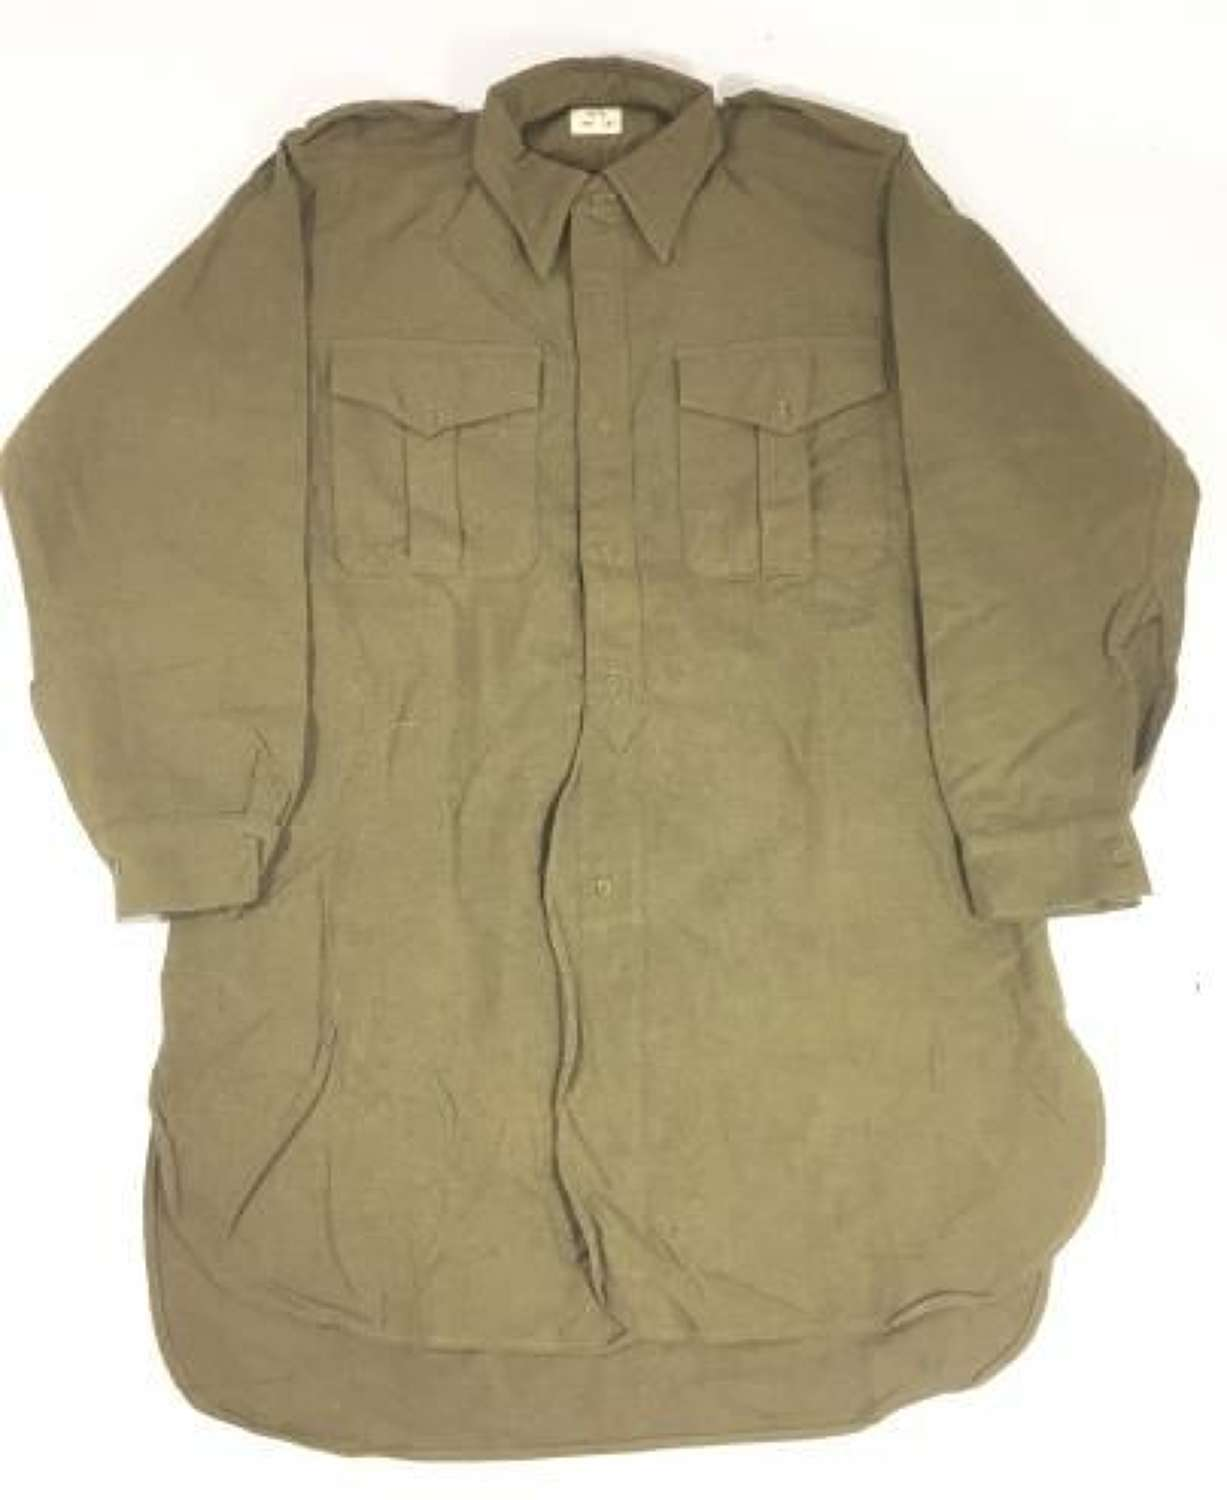 1952 Dated British Army OR Shirt - Large Size No.6